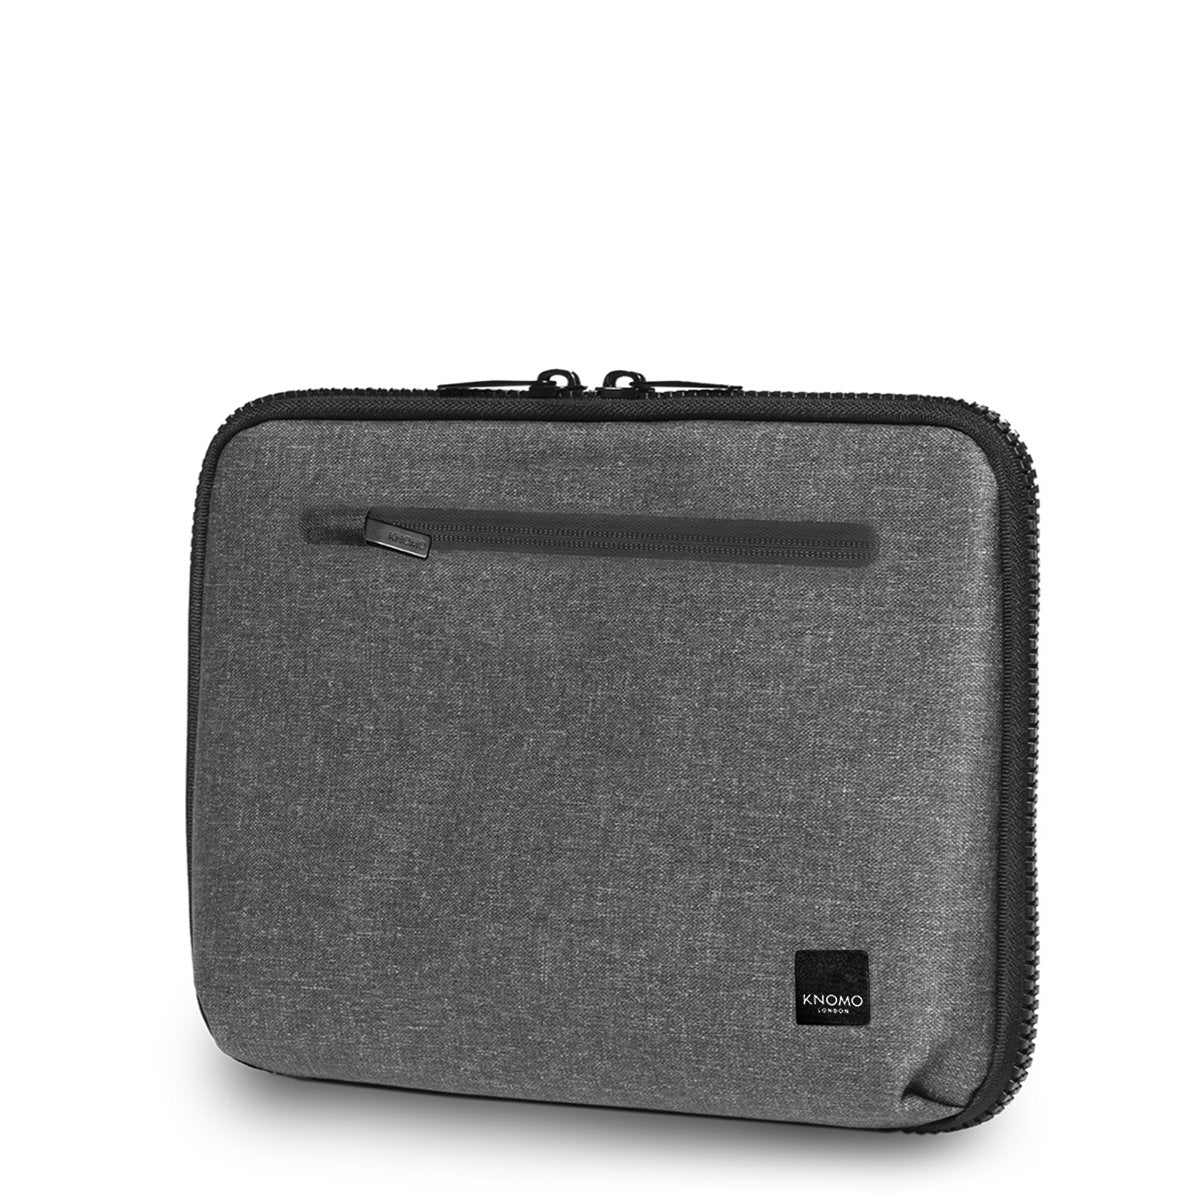 "KNOMO Thames Knomad Organiser Tech Organiser Three Quarter View 13"" -  Grey 